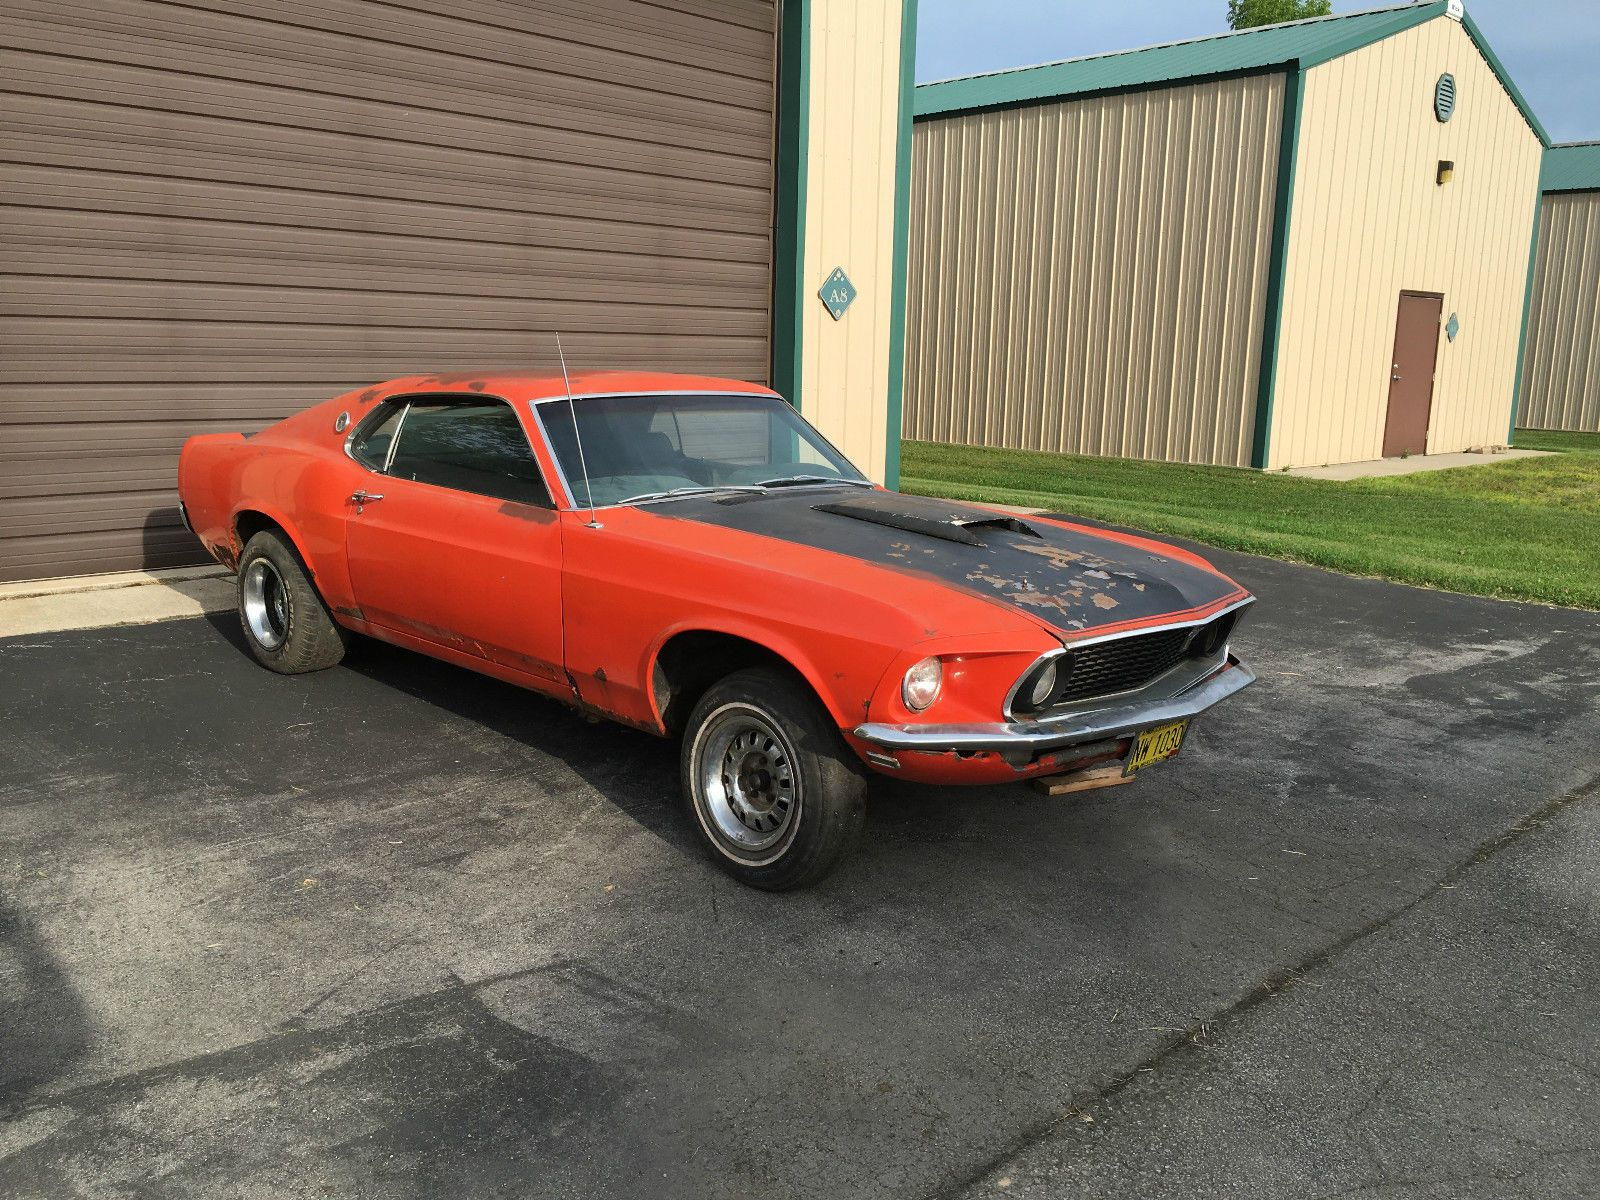 1969 ford mustang fastback sport roof project car | project cars for